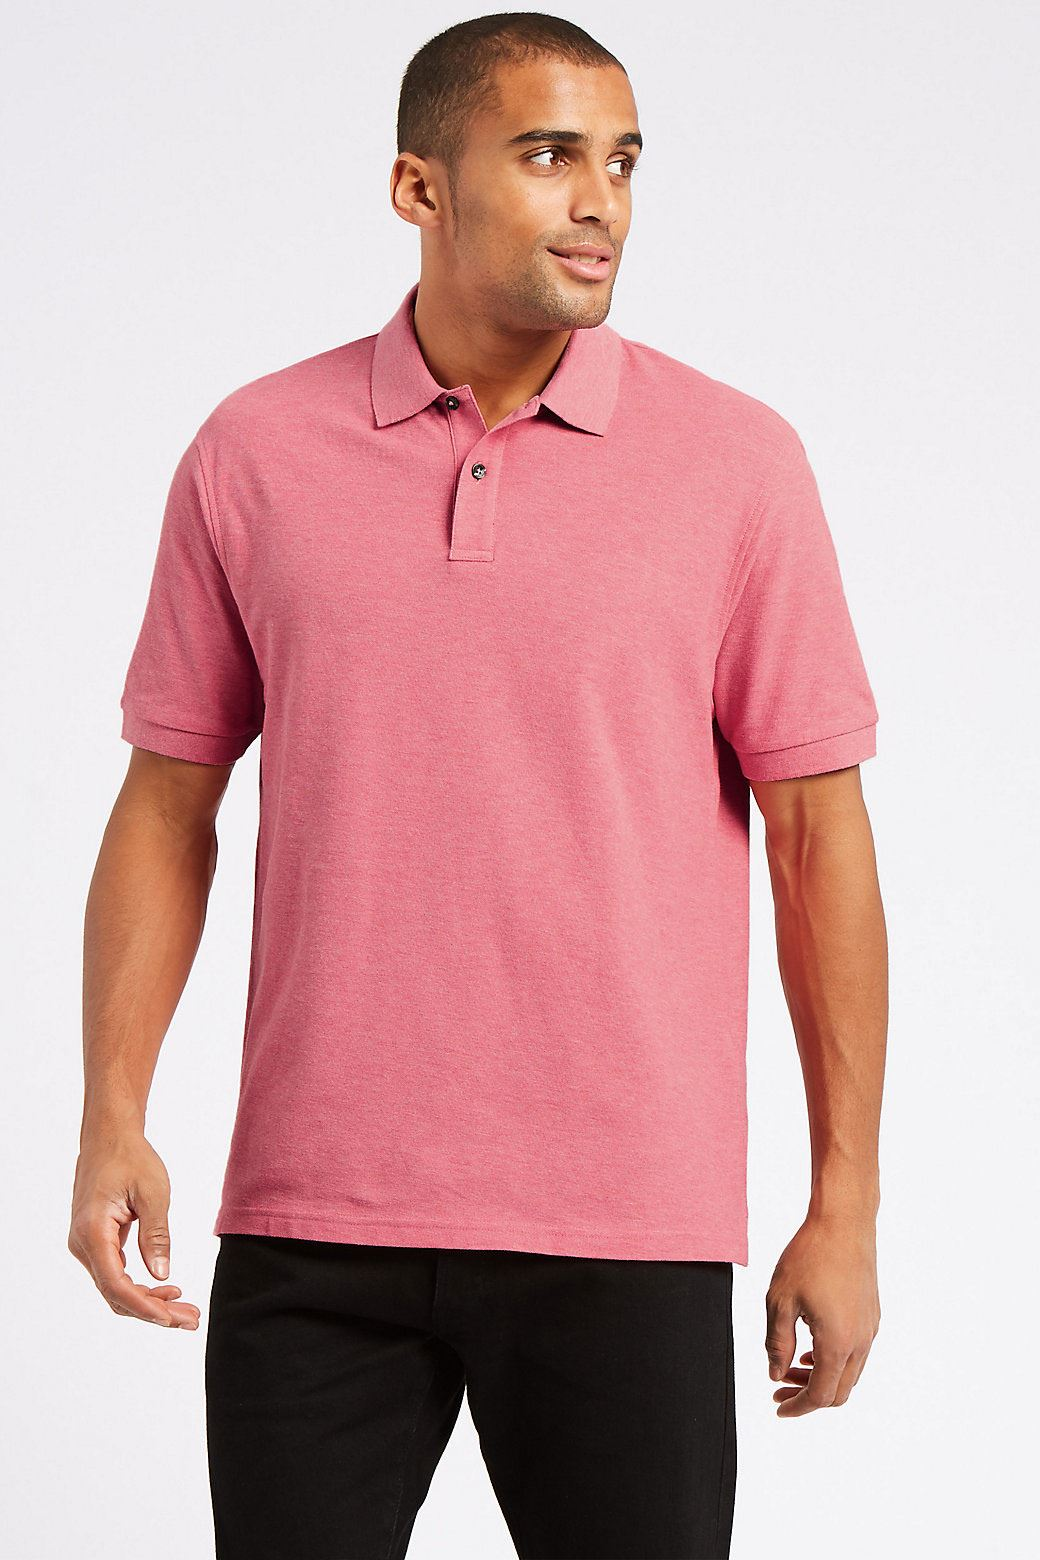 Ex Marks and Spencer Mens Cotton Pique Polo Shirt NEW Sizes S 3XL